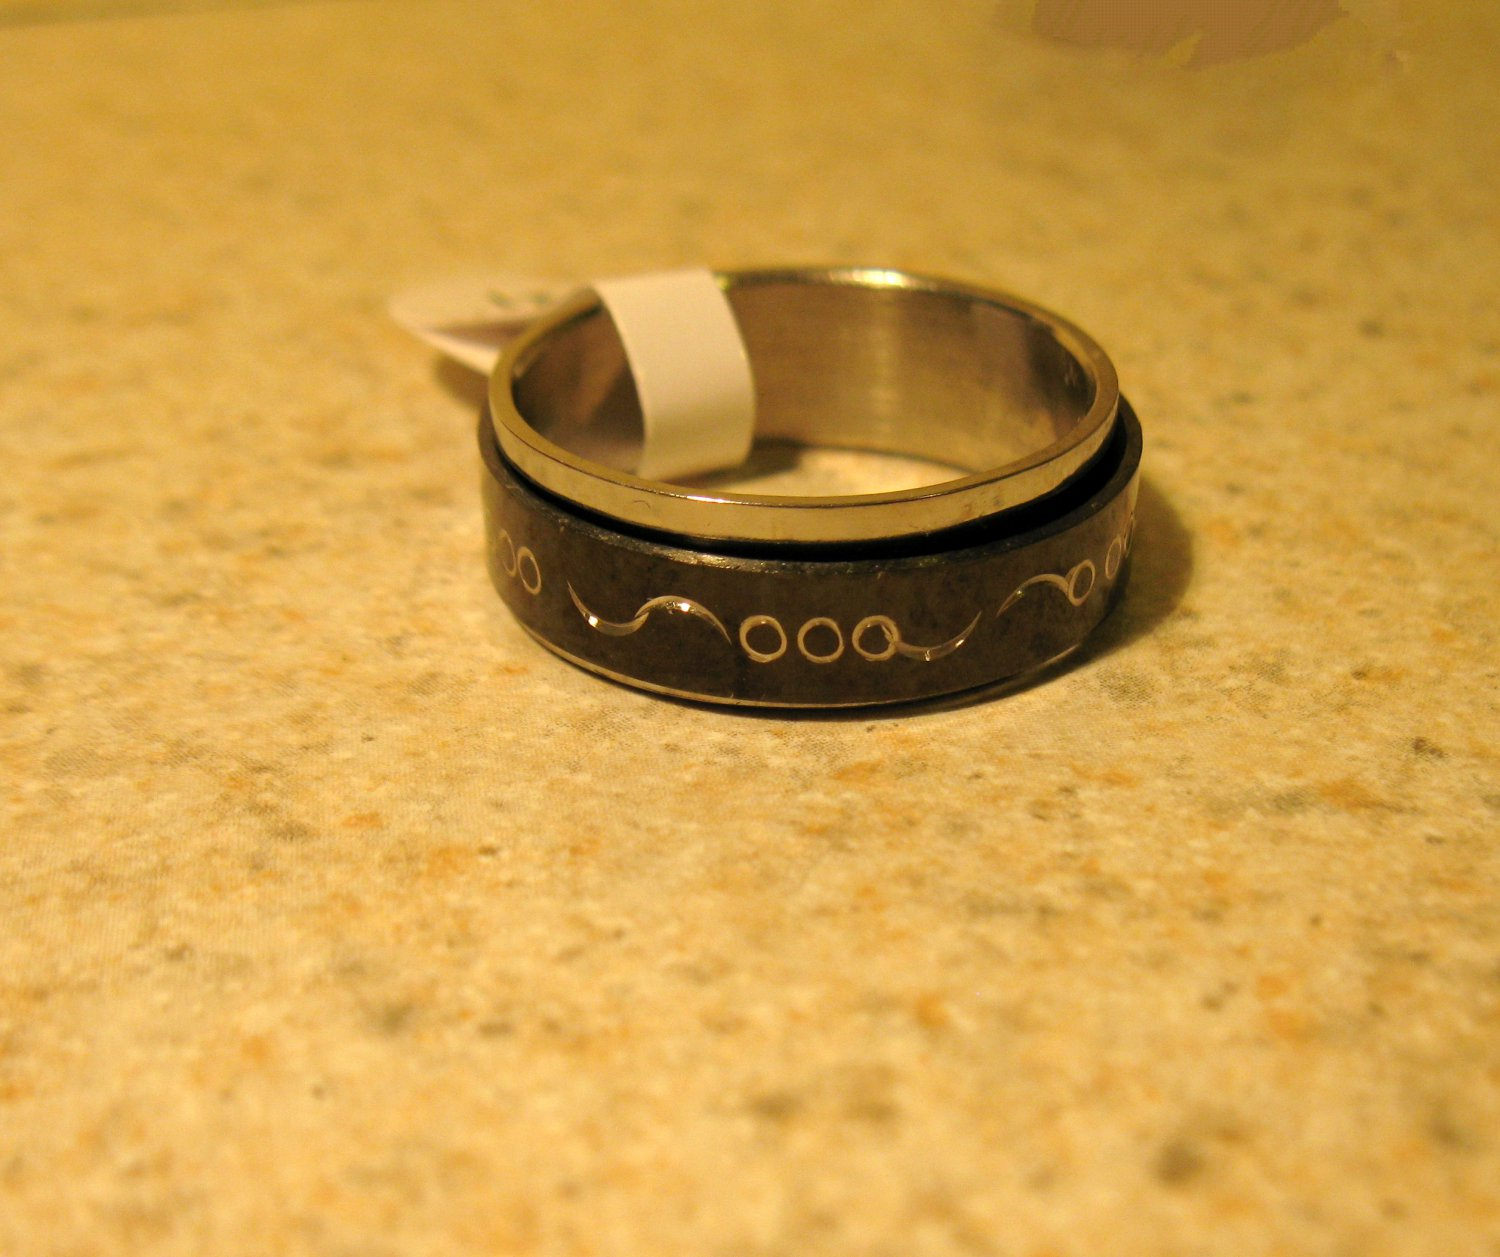 Black Triple Scroll Band Ring Unisex Size 11 HOT! #70